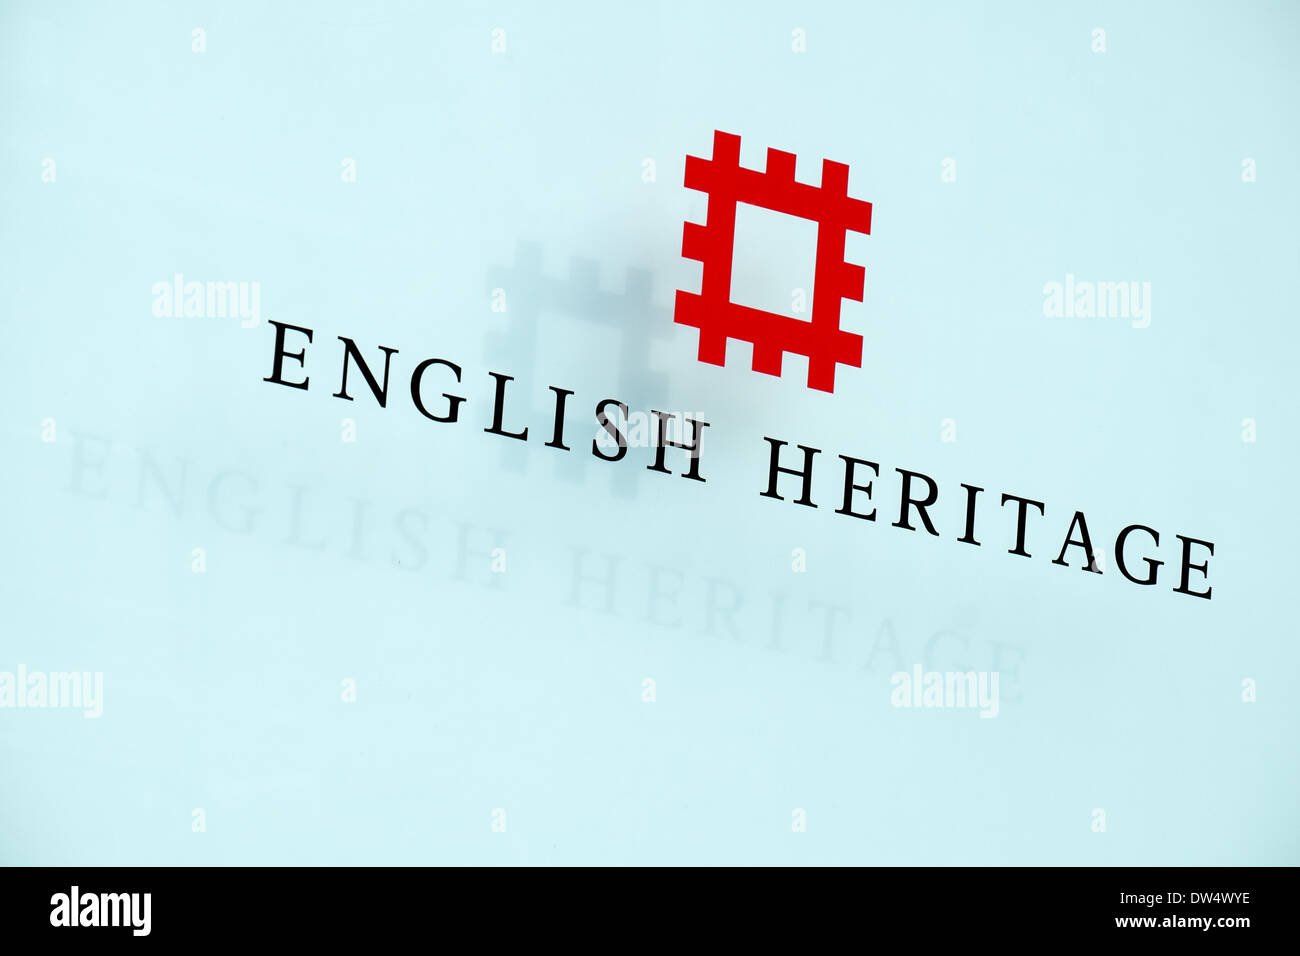 The English Heritage logo & text on a glass panel with shadow projected behind at their offices in Swindon, Wiltshire, UK - Stock Image